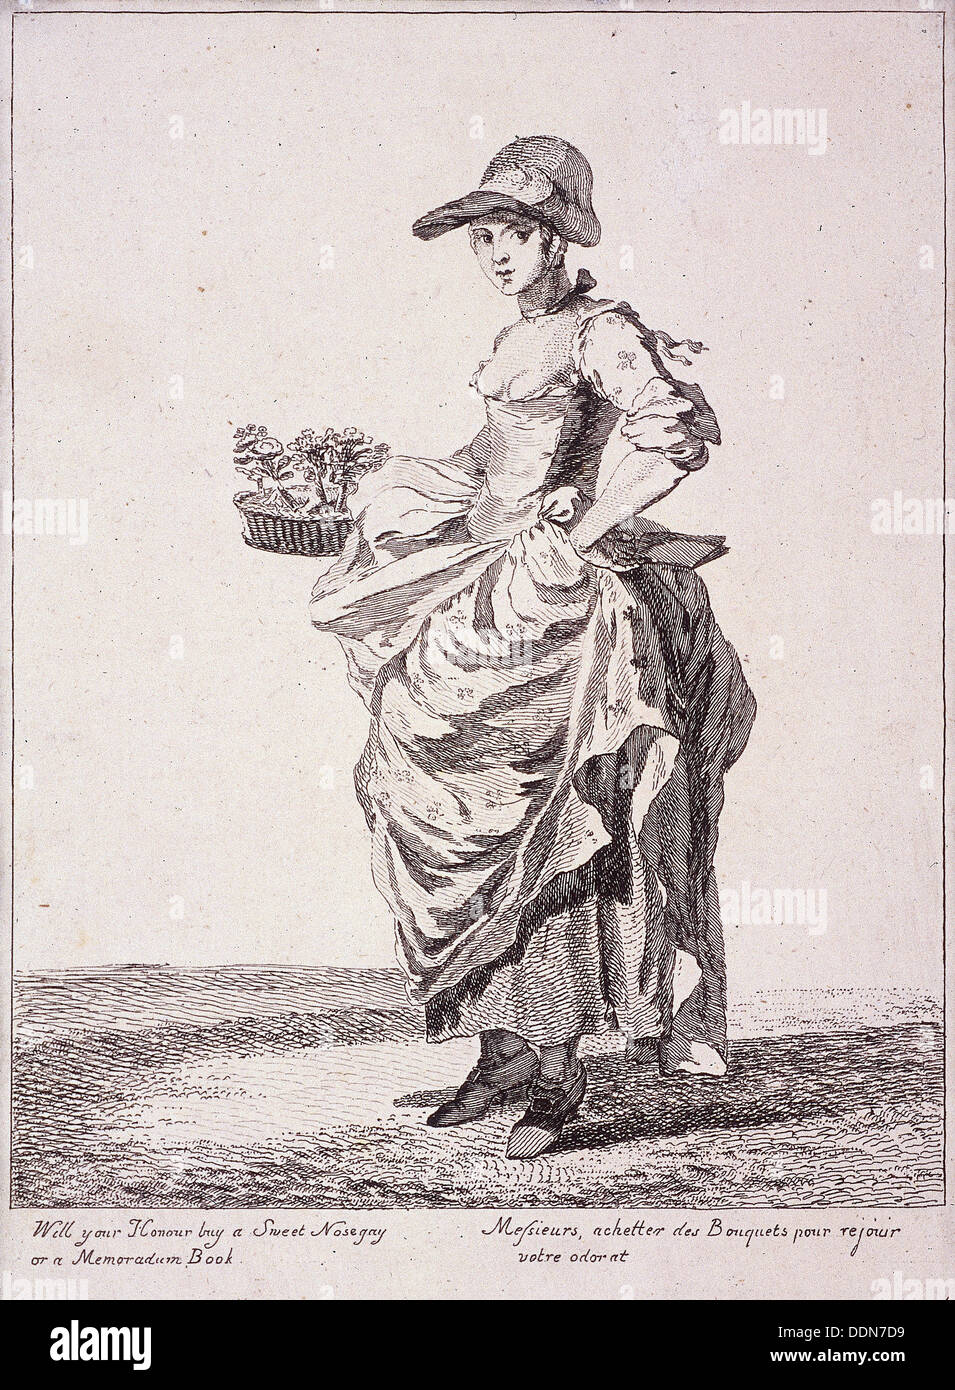 Nosegay and memo book seller, Cries of London, 1760. Artist: Paul Sandby - Stock Image